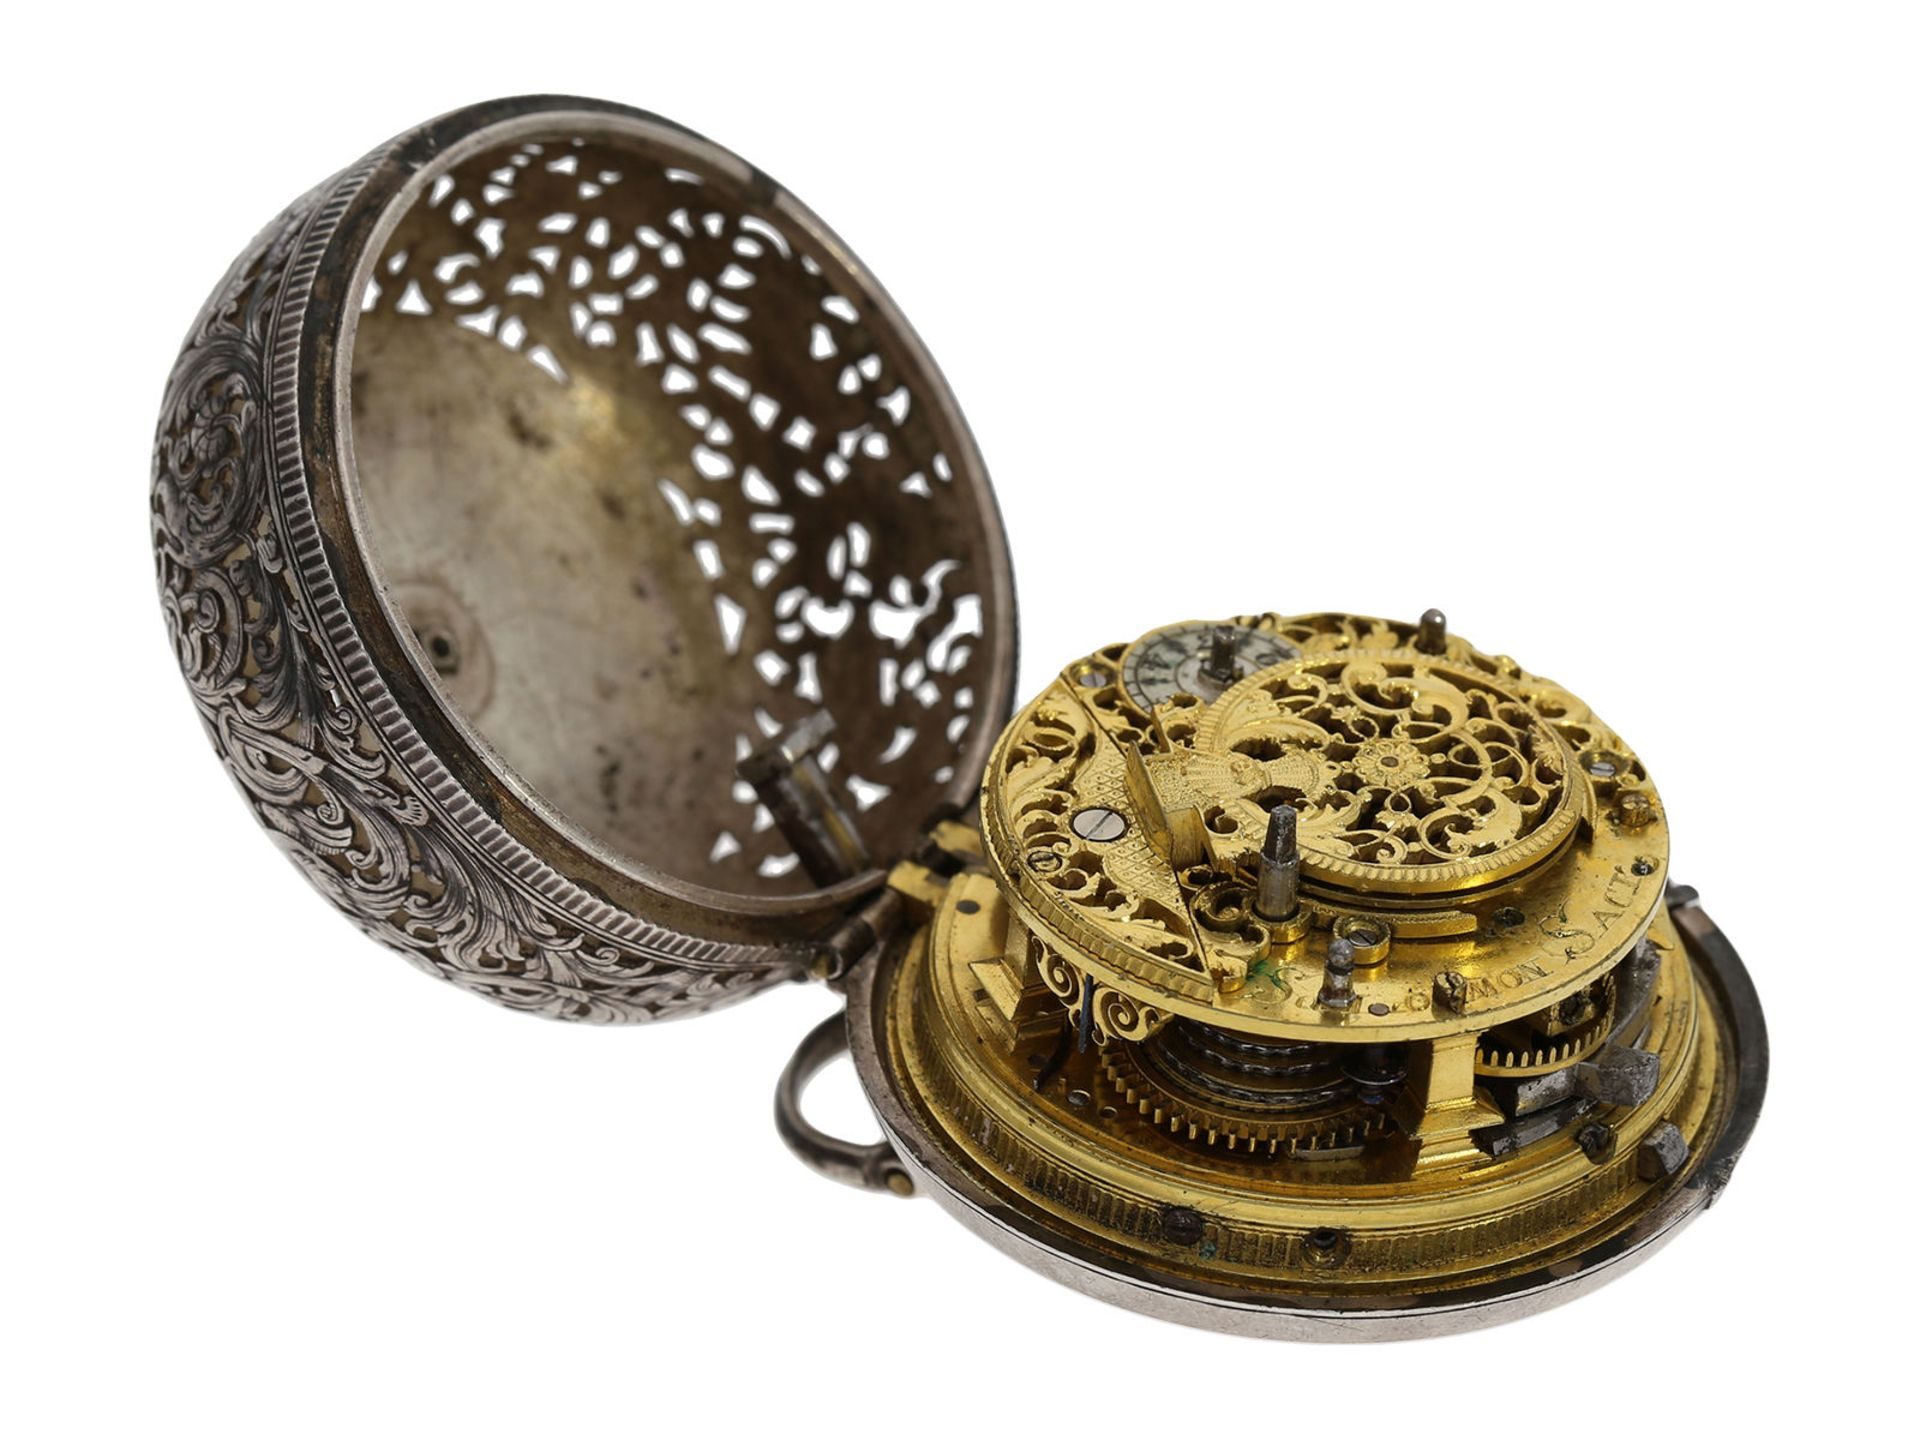 Pocket watch: Augsburg pair case repousse verge watch with relief case in exceptional quality and - Bild 8 aus 14